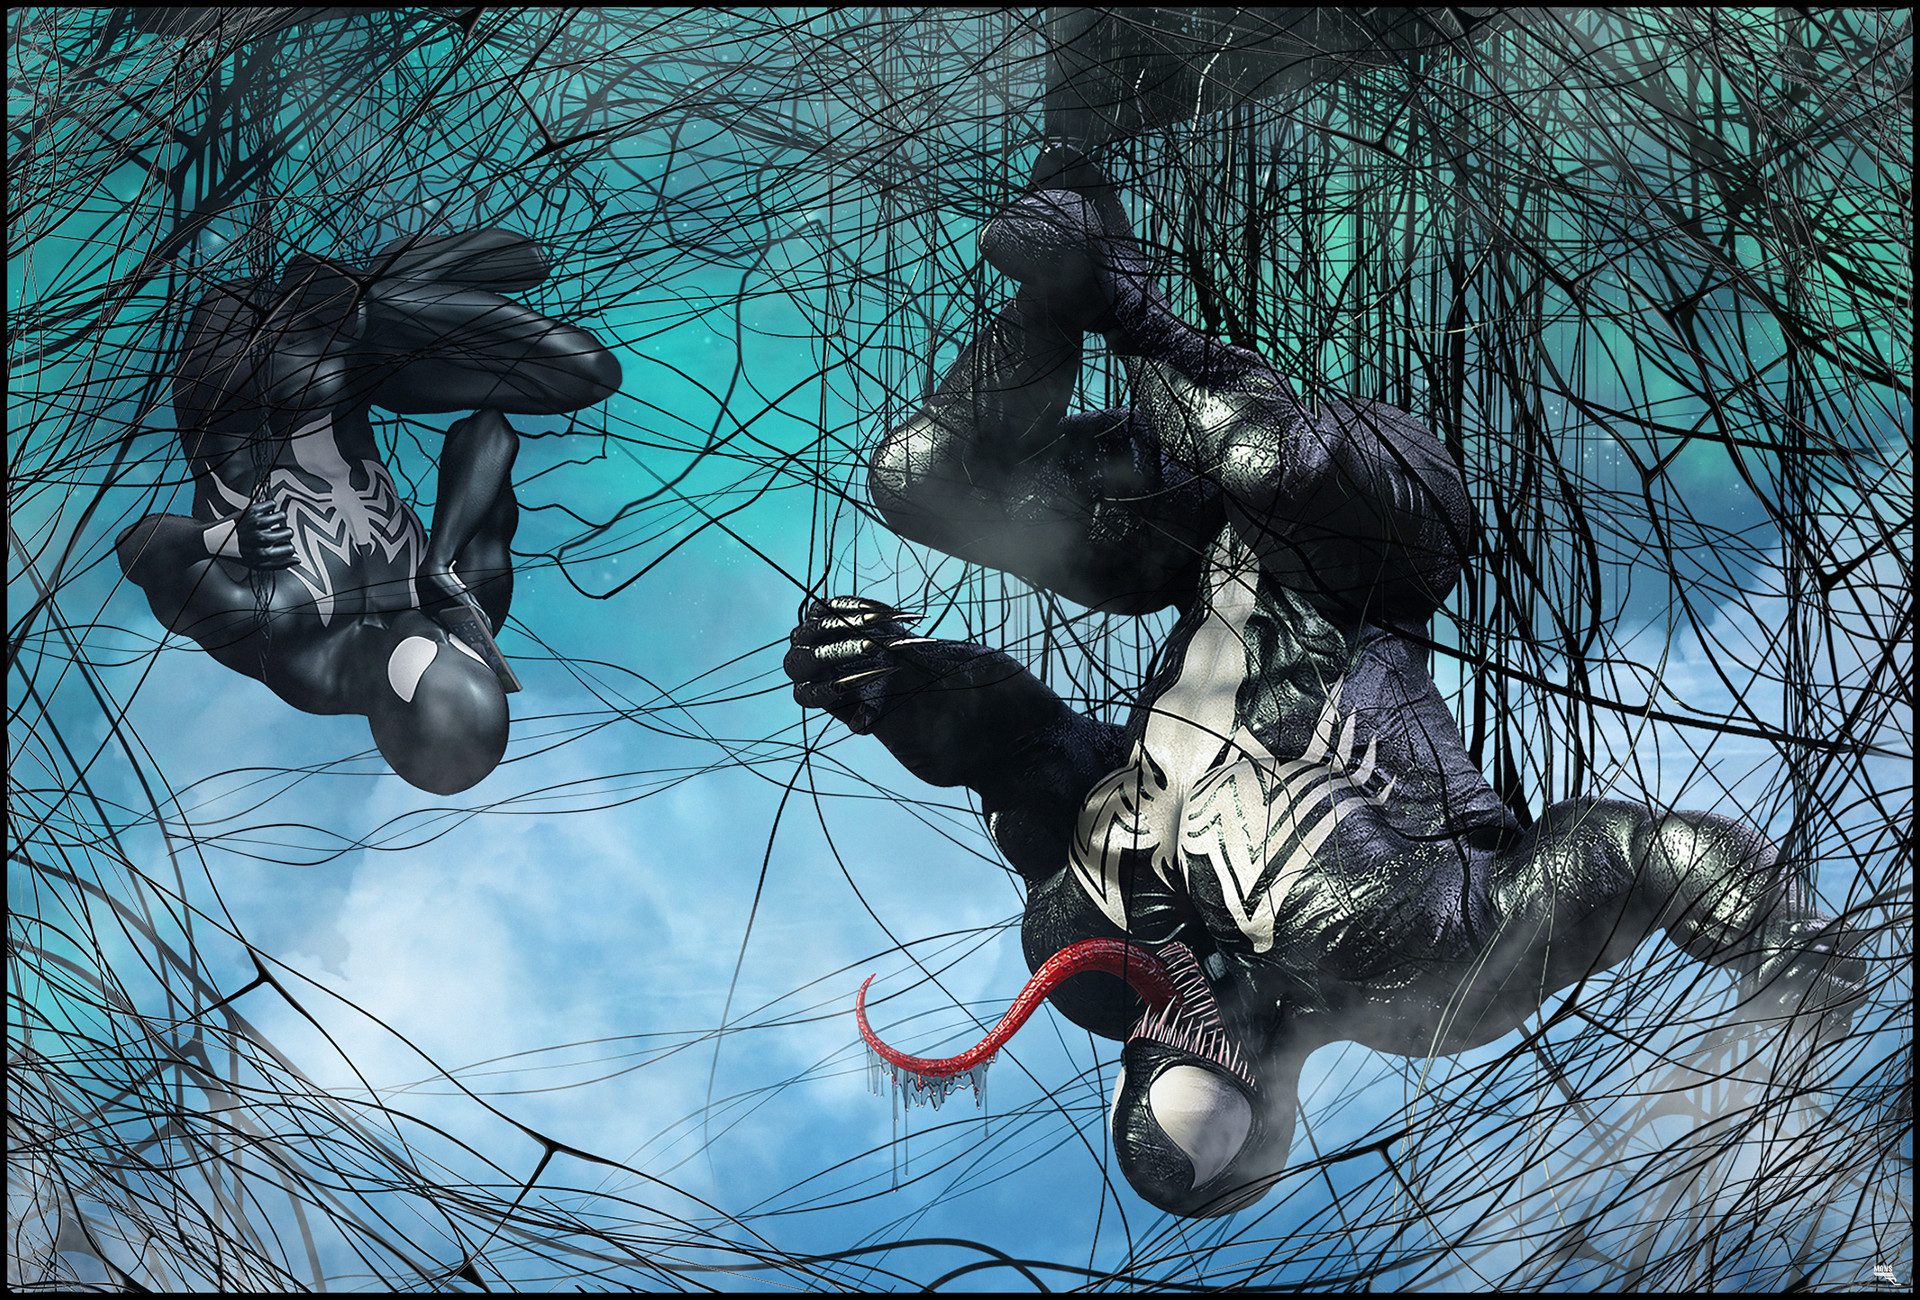 Marc mons spidey and venom teamp up by marcmons007 dbha5a7